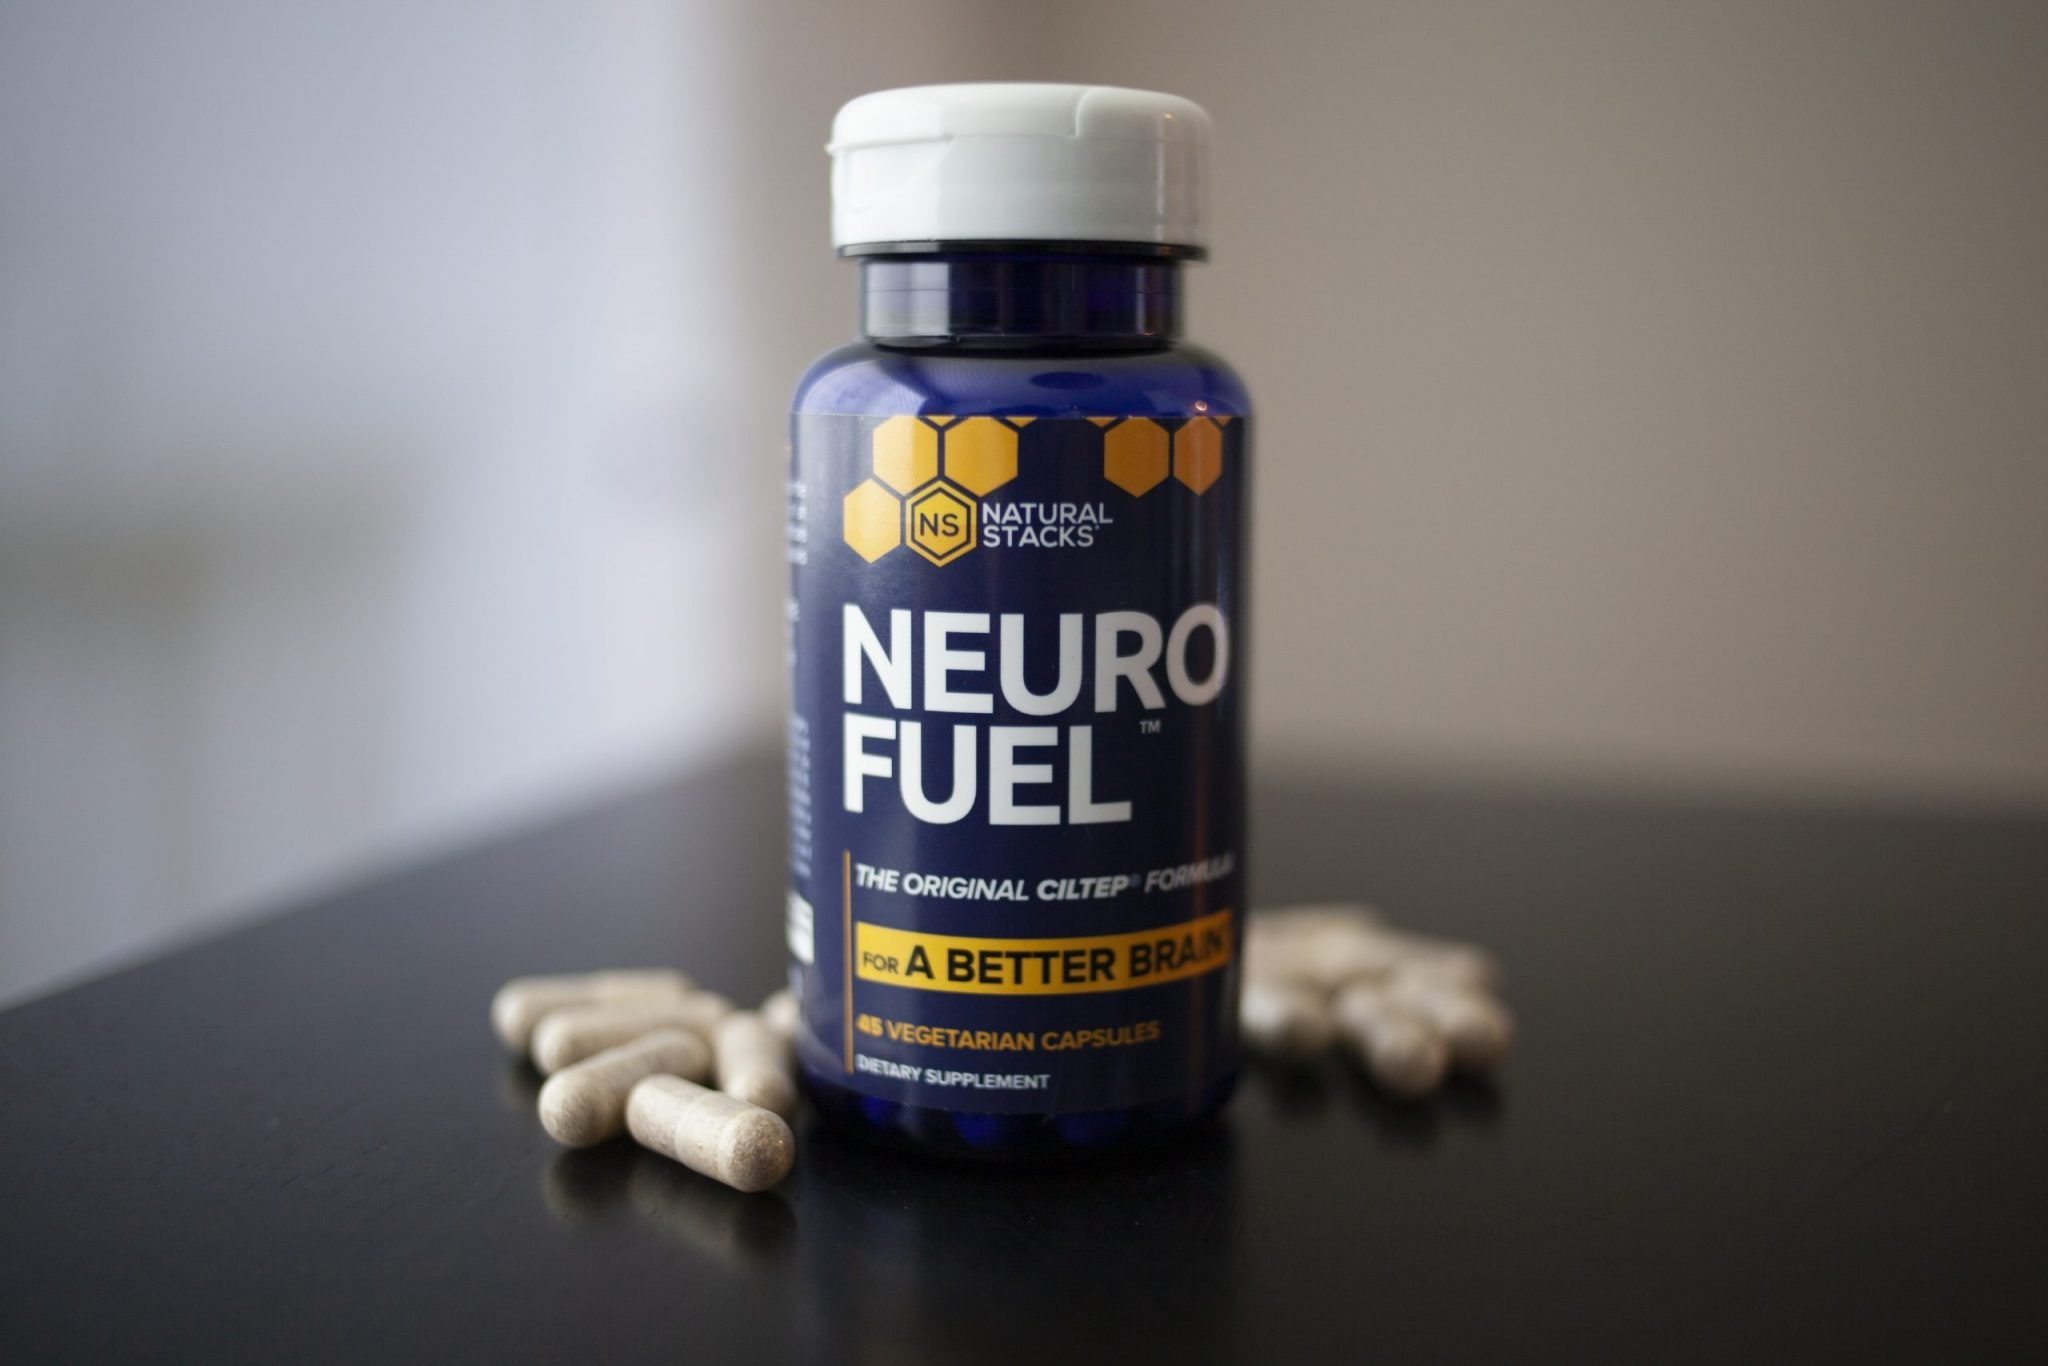 bottle and capsules of NEUROFUEL supplement